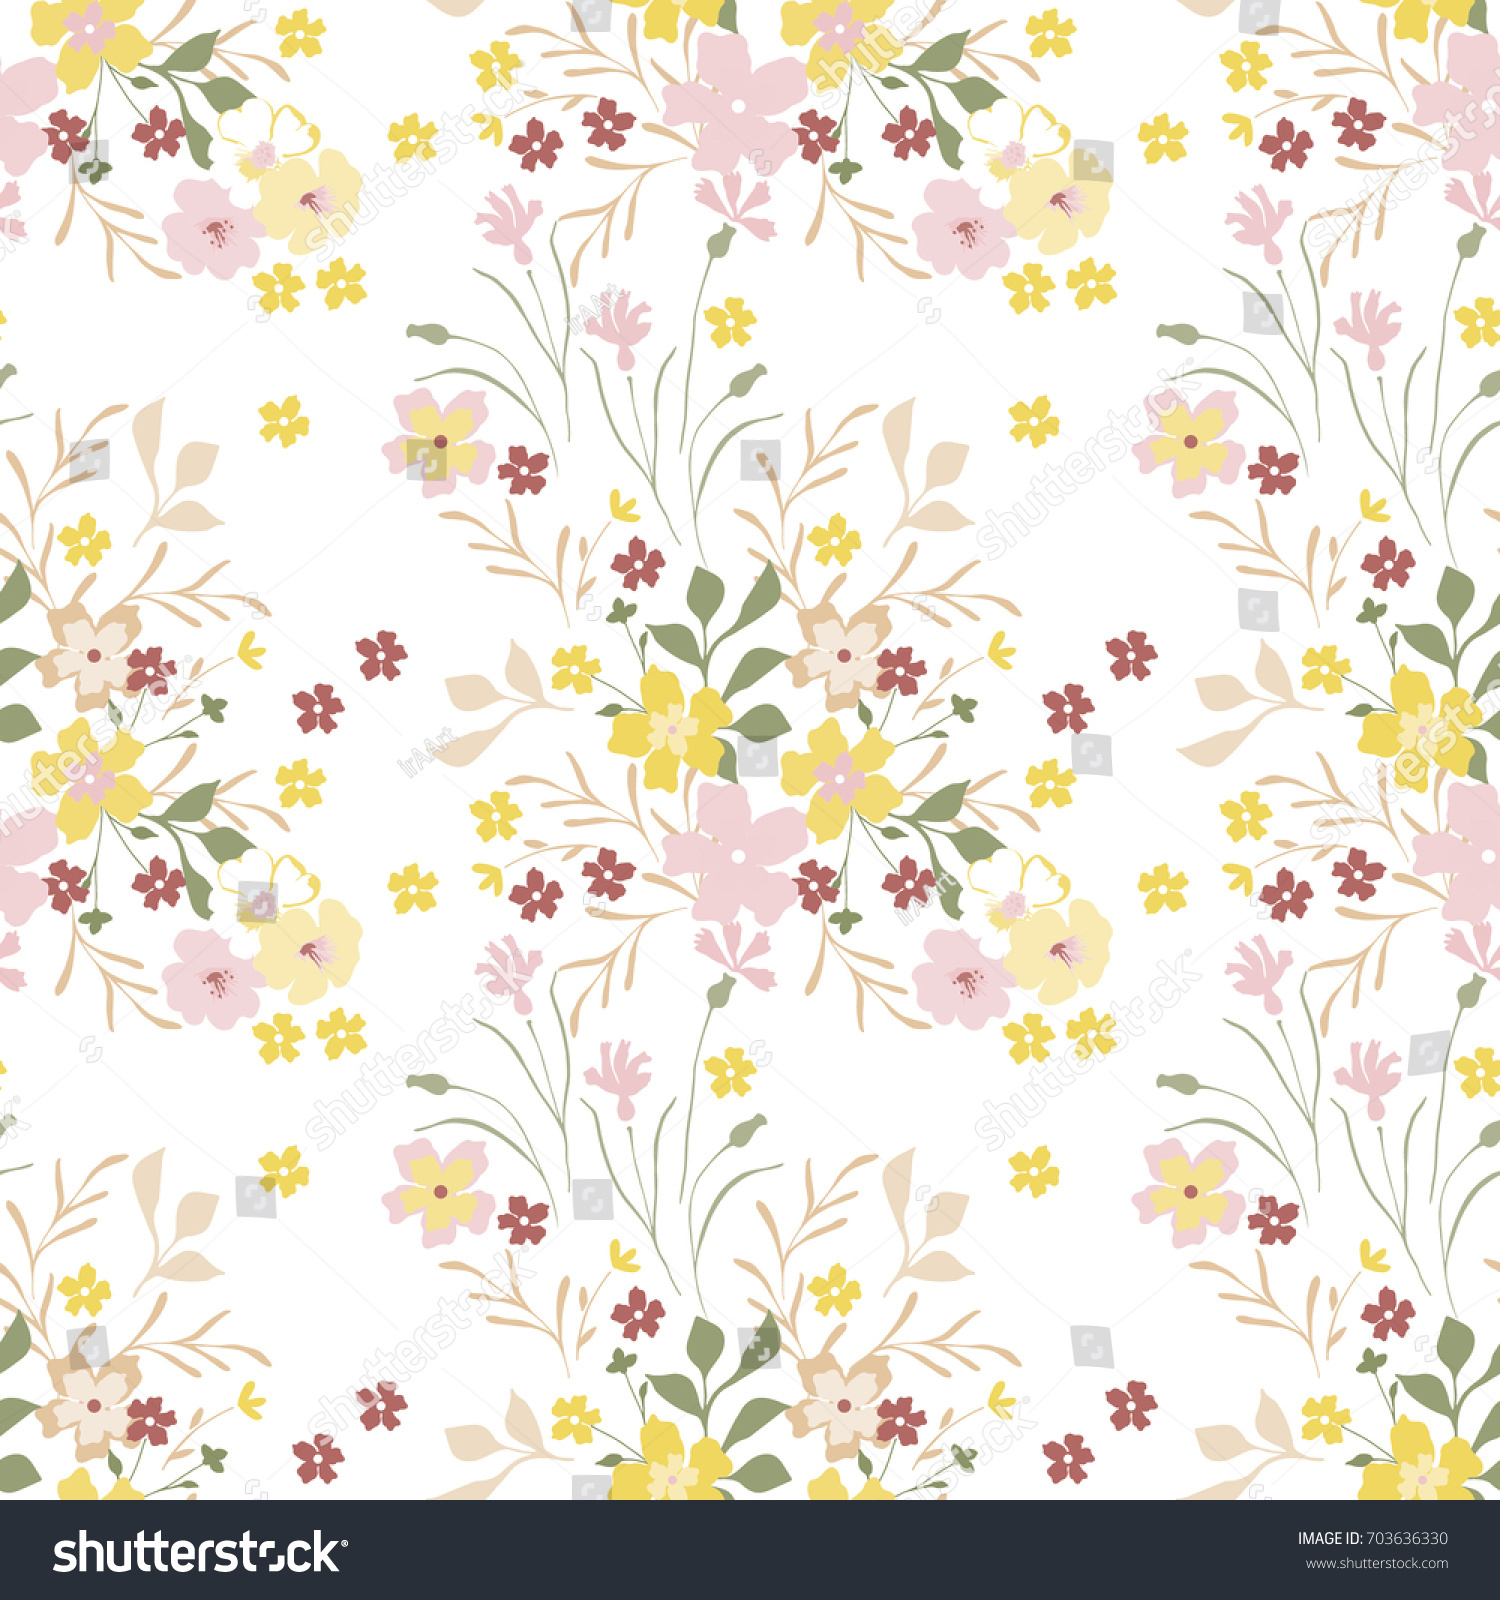 Vintage floral pattern cute small flowers for design fabric paper id 703636330 mightylinksfo